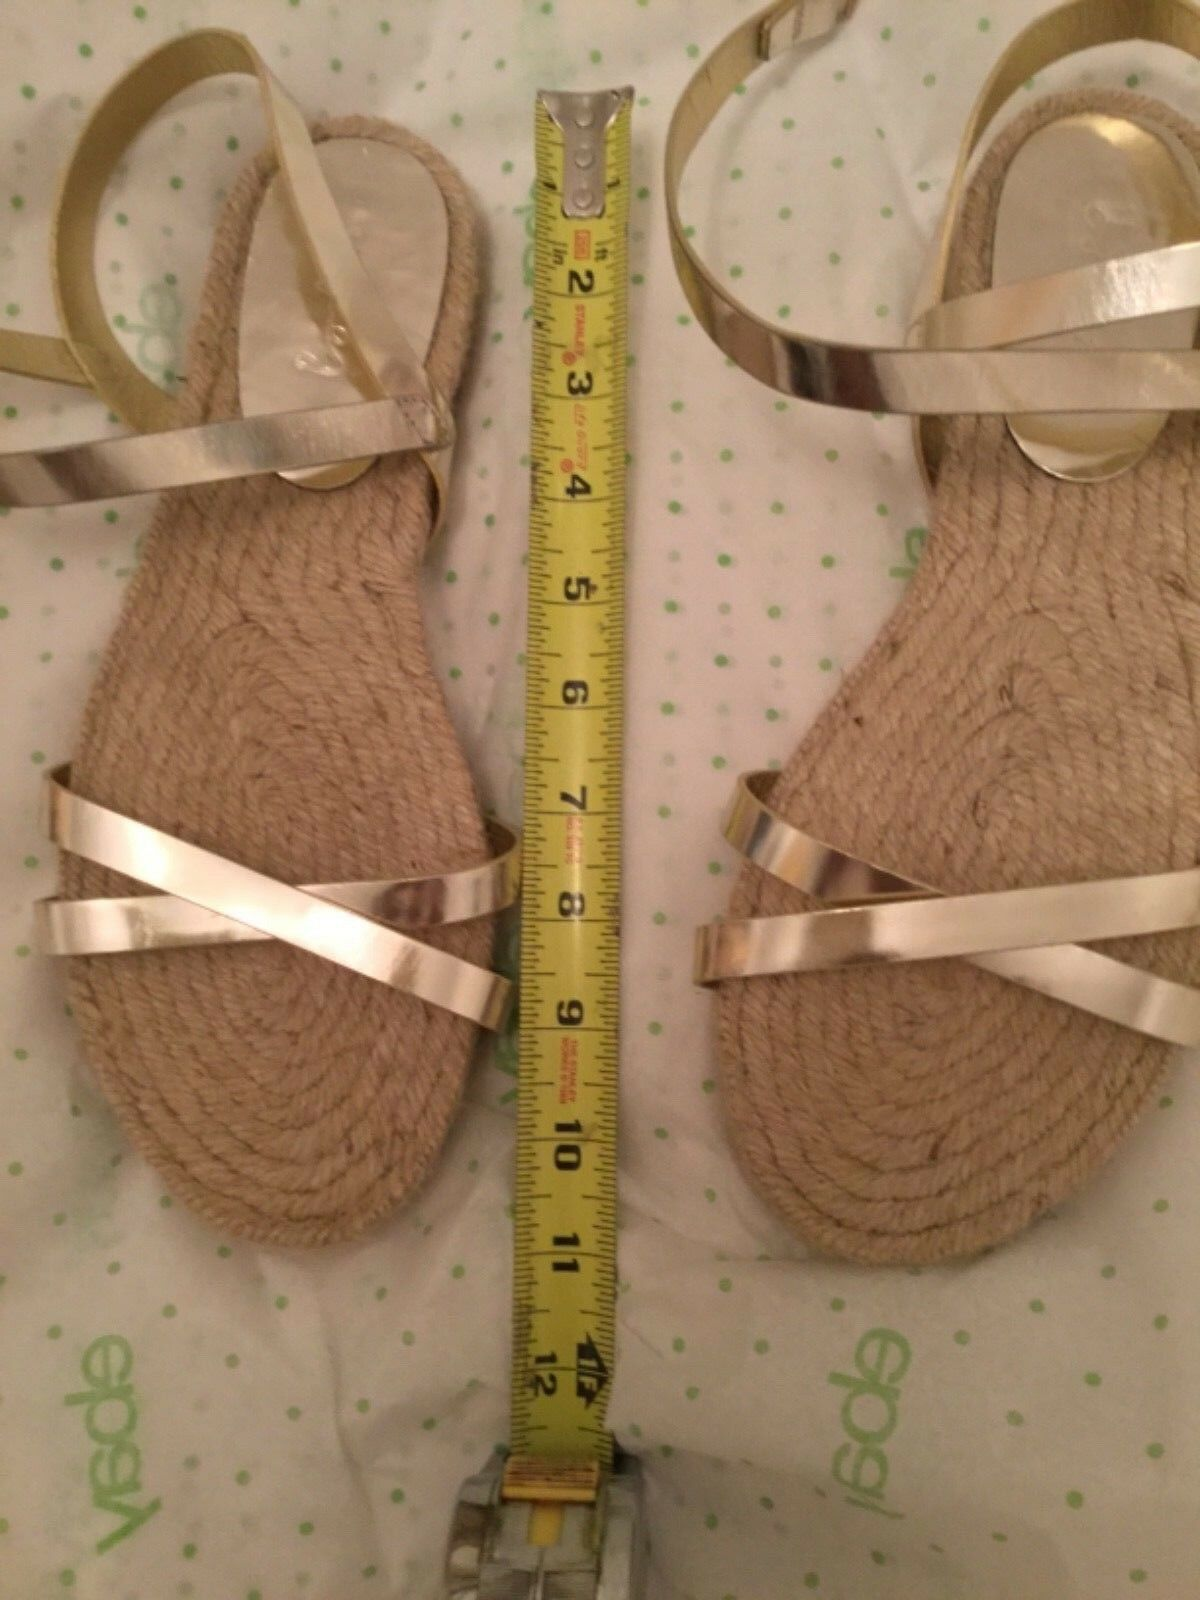 NEW Boden donna's oro Leather Jute Sole Espadrille Espadrille Espadrille Sandal - 12 ac7160